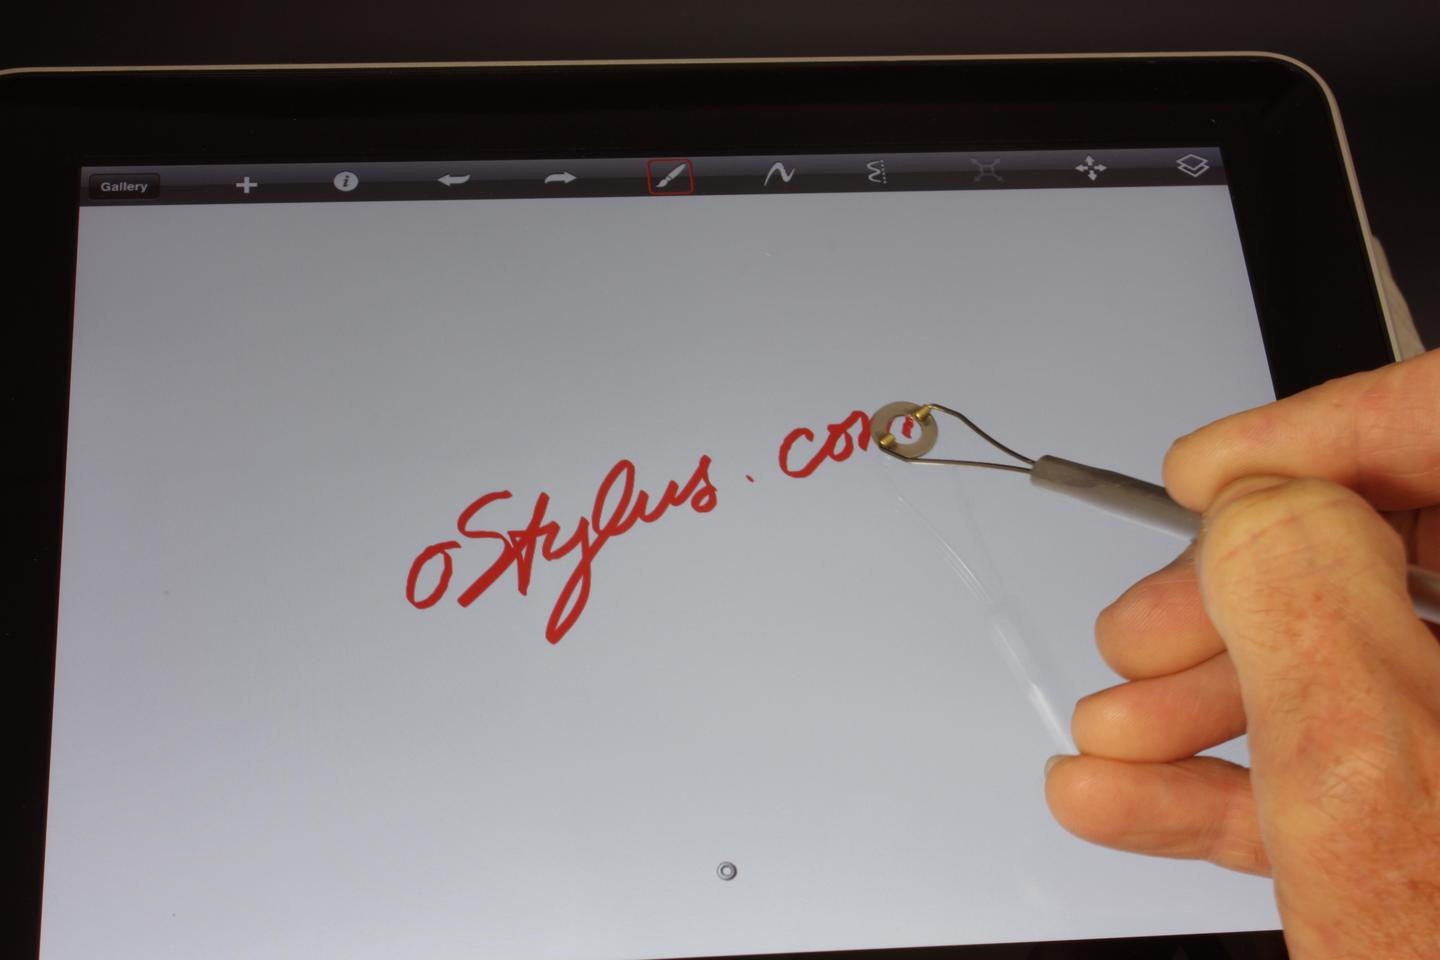 A pre-production prototype writing on the touchscreen display of an iPad